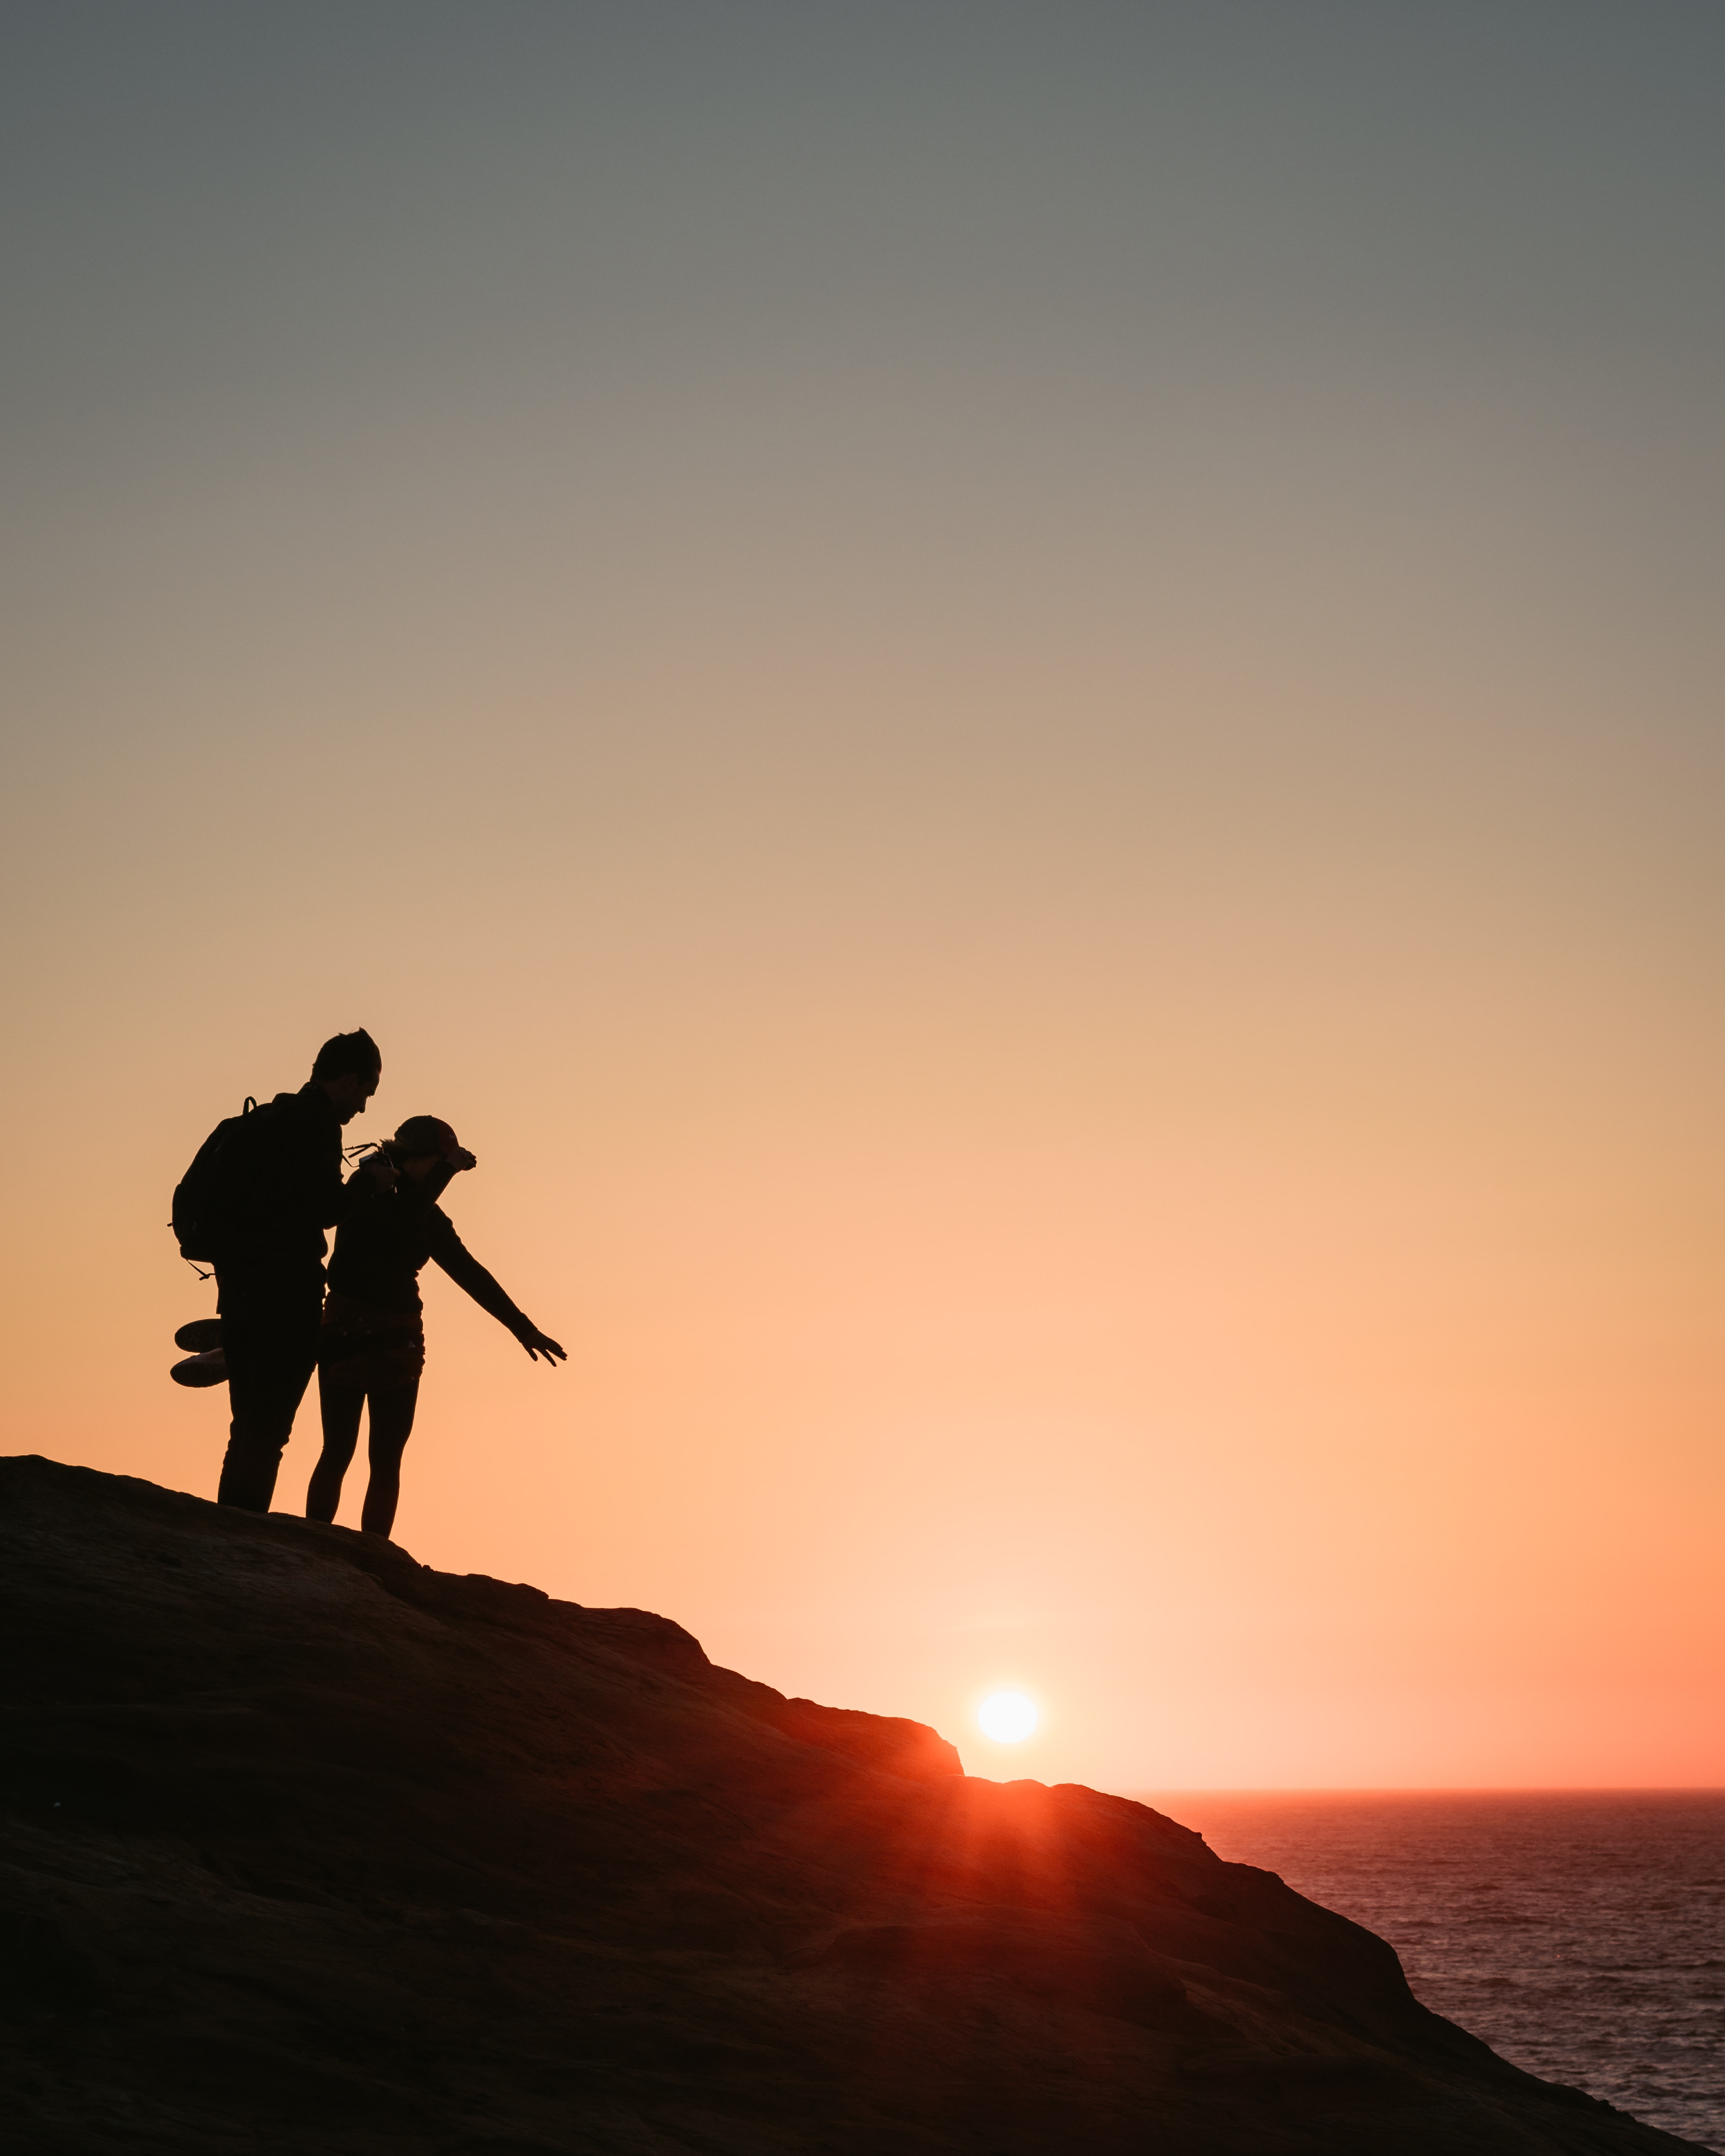 silhouette of man and woman standing on rock formation near body of water